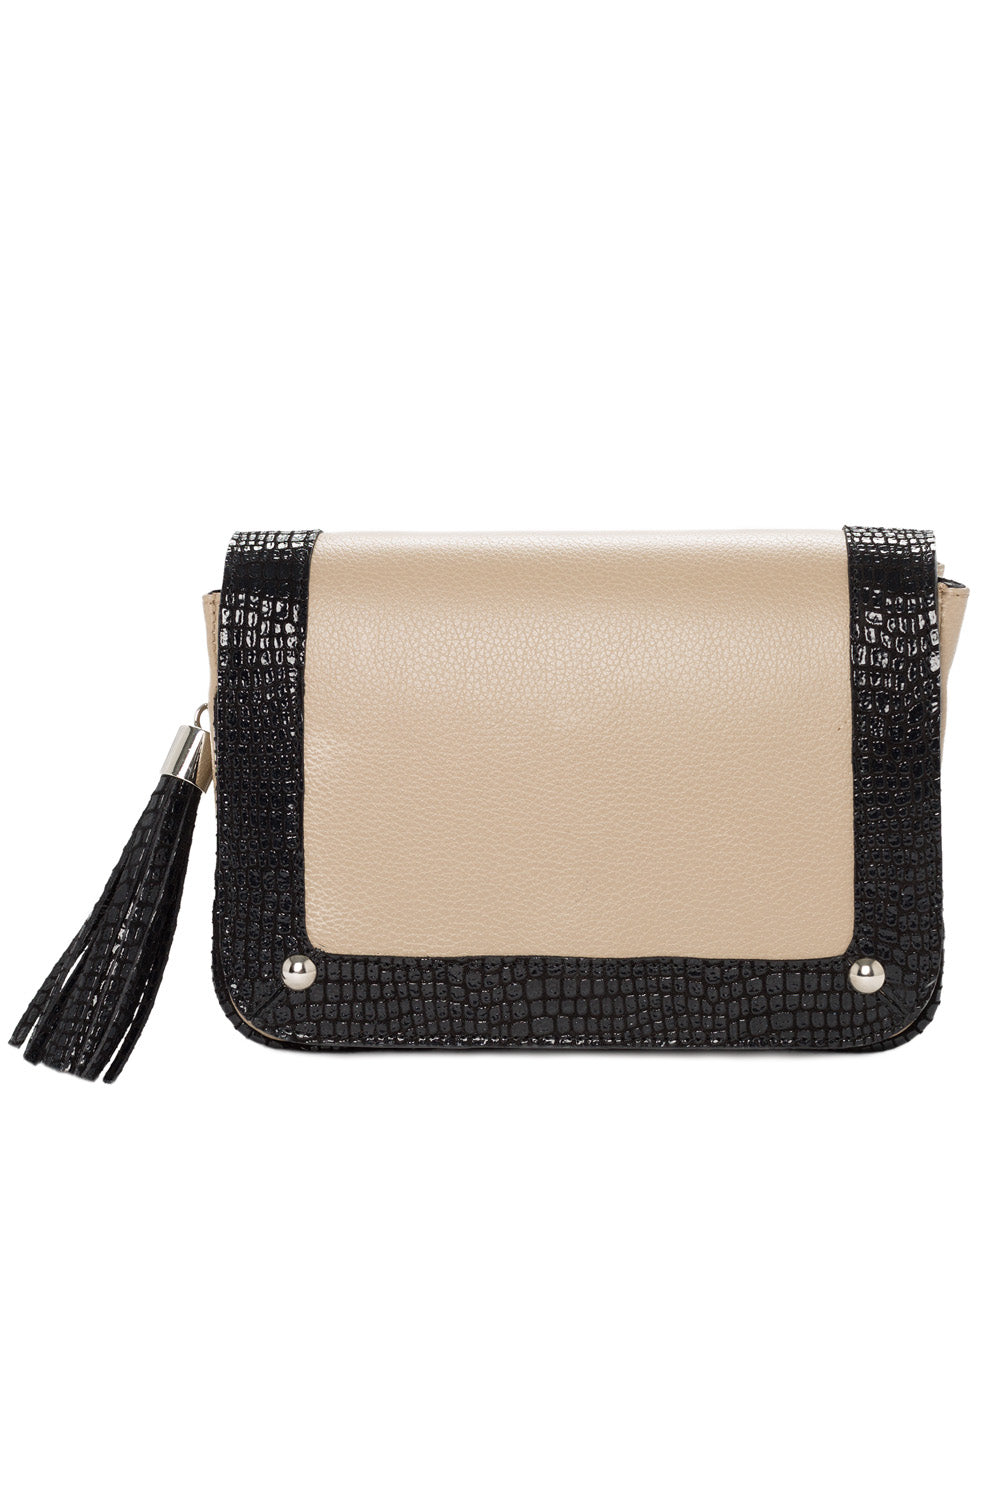 'Amber' Small Shoulder Bag in Taupe And Black Leather | Mel Boteri | Front View